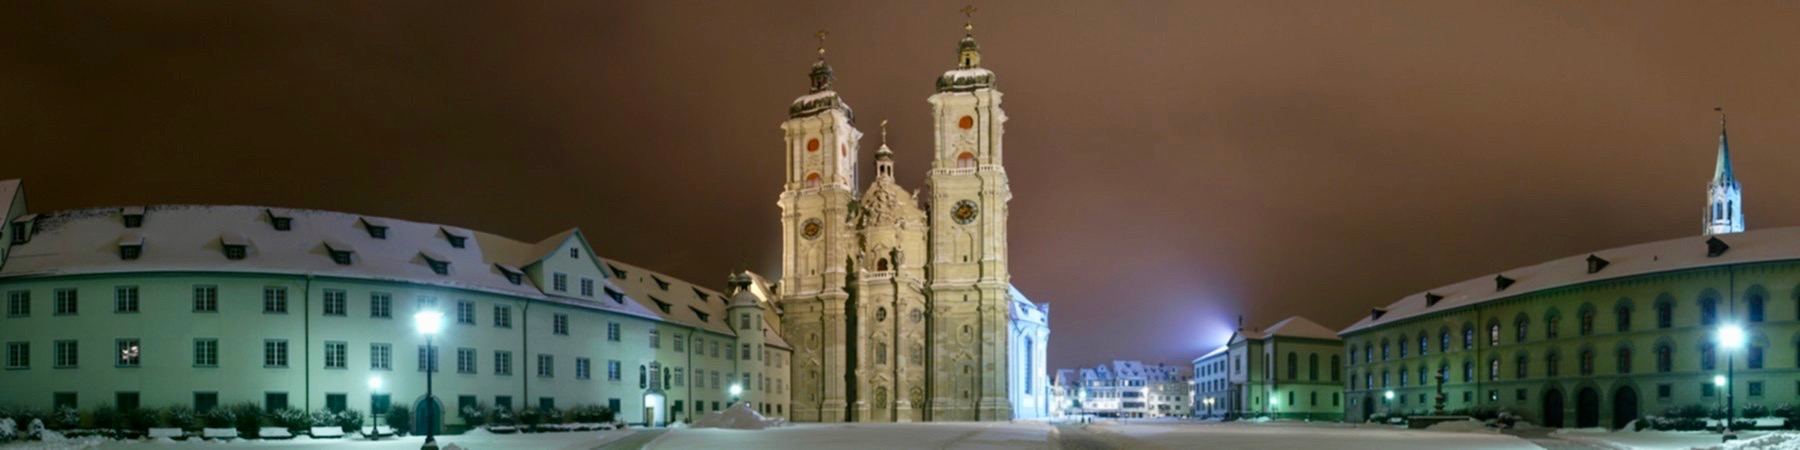 the_abbey_of_st_gall